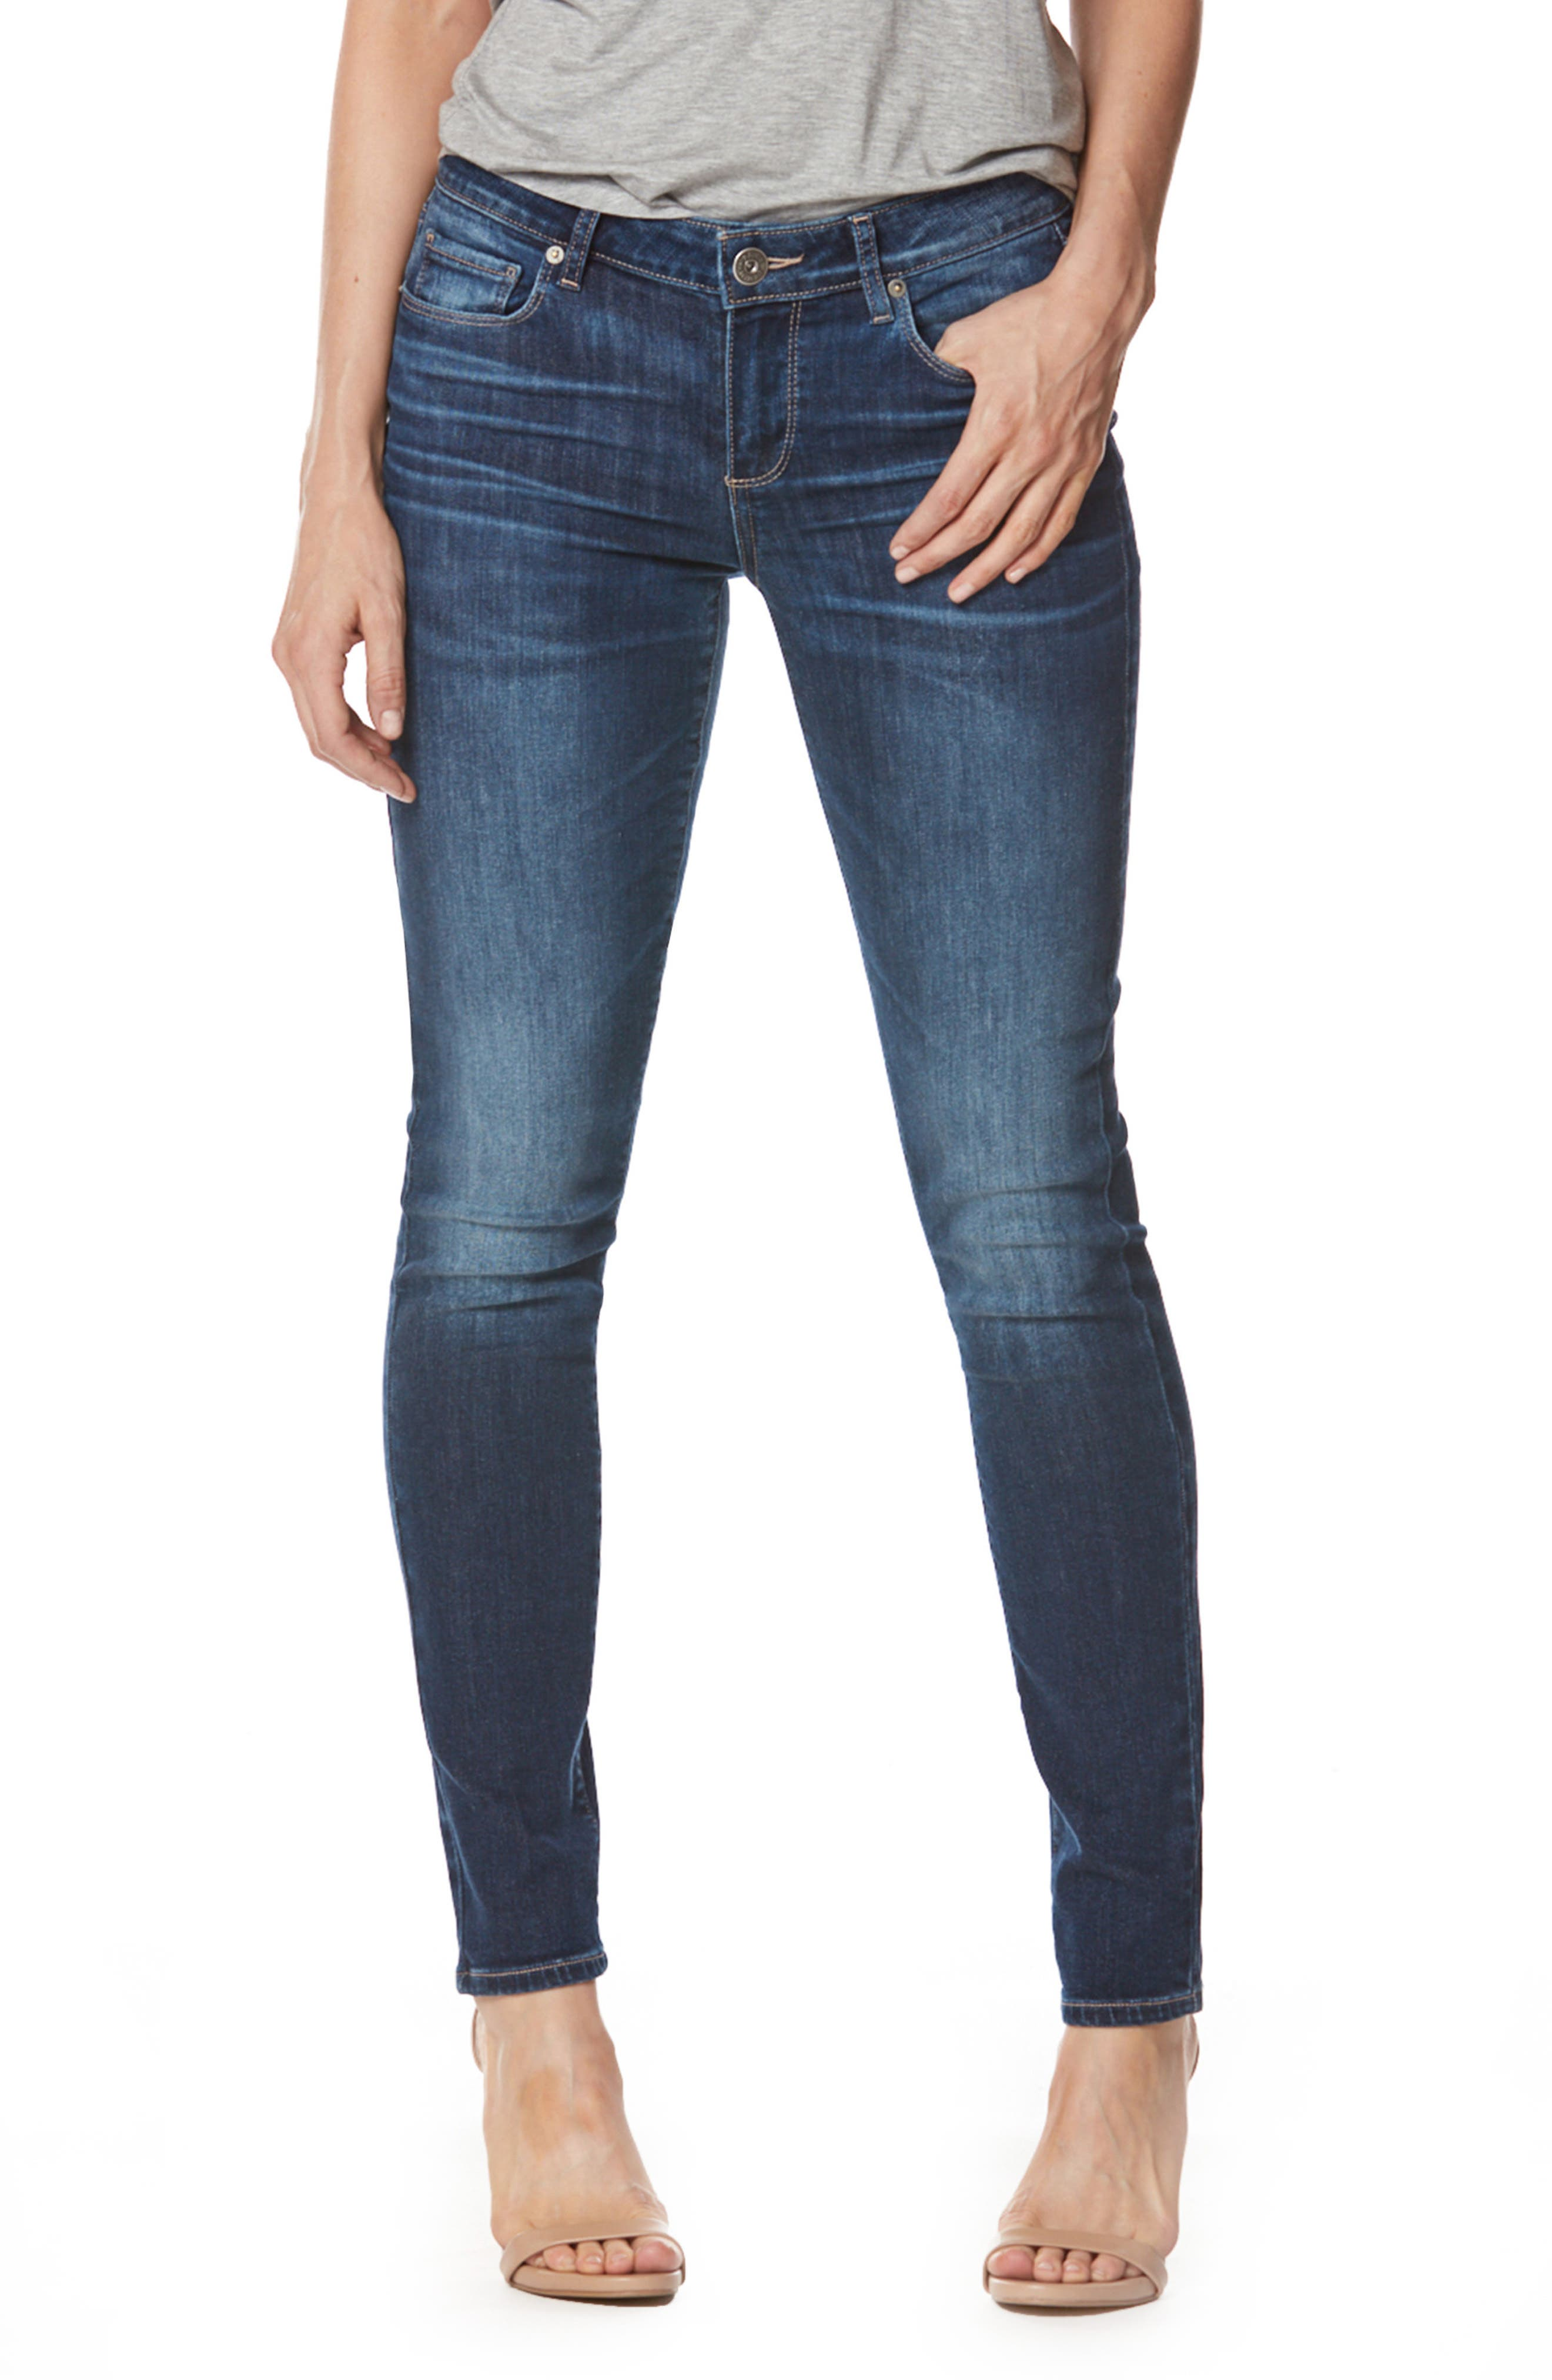 Transcend - Verdugo Ultra Skinny Jeans,                         Main,                         color, 400